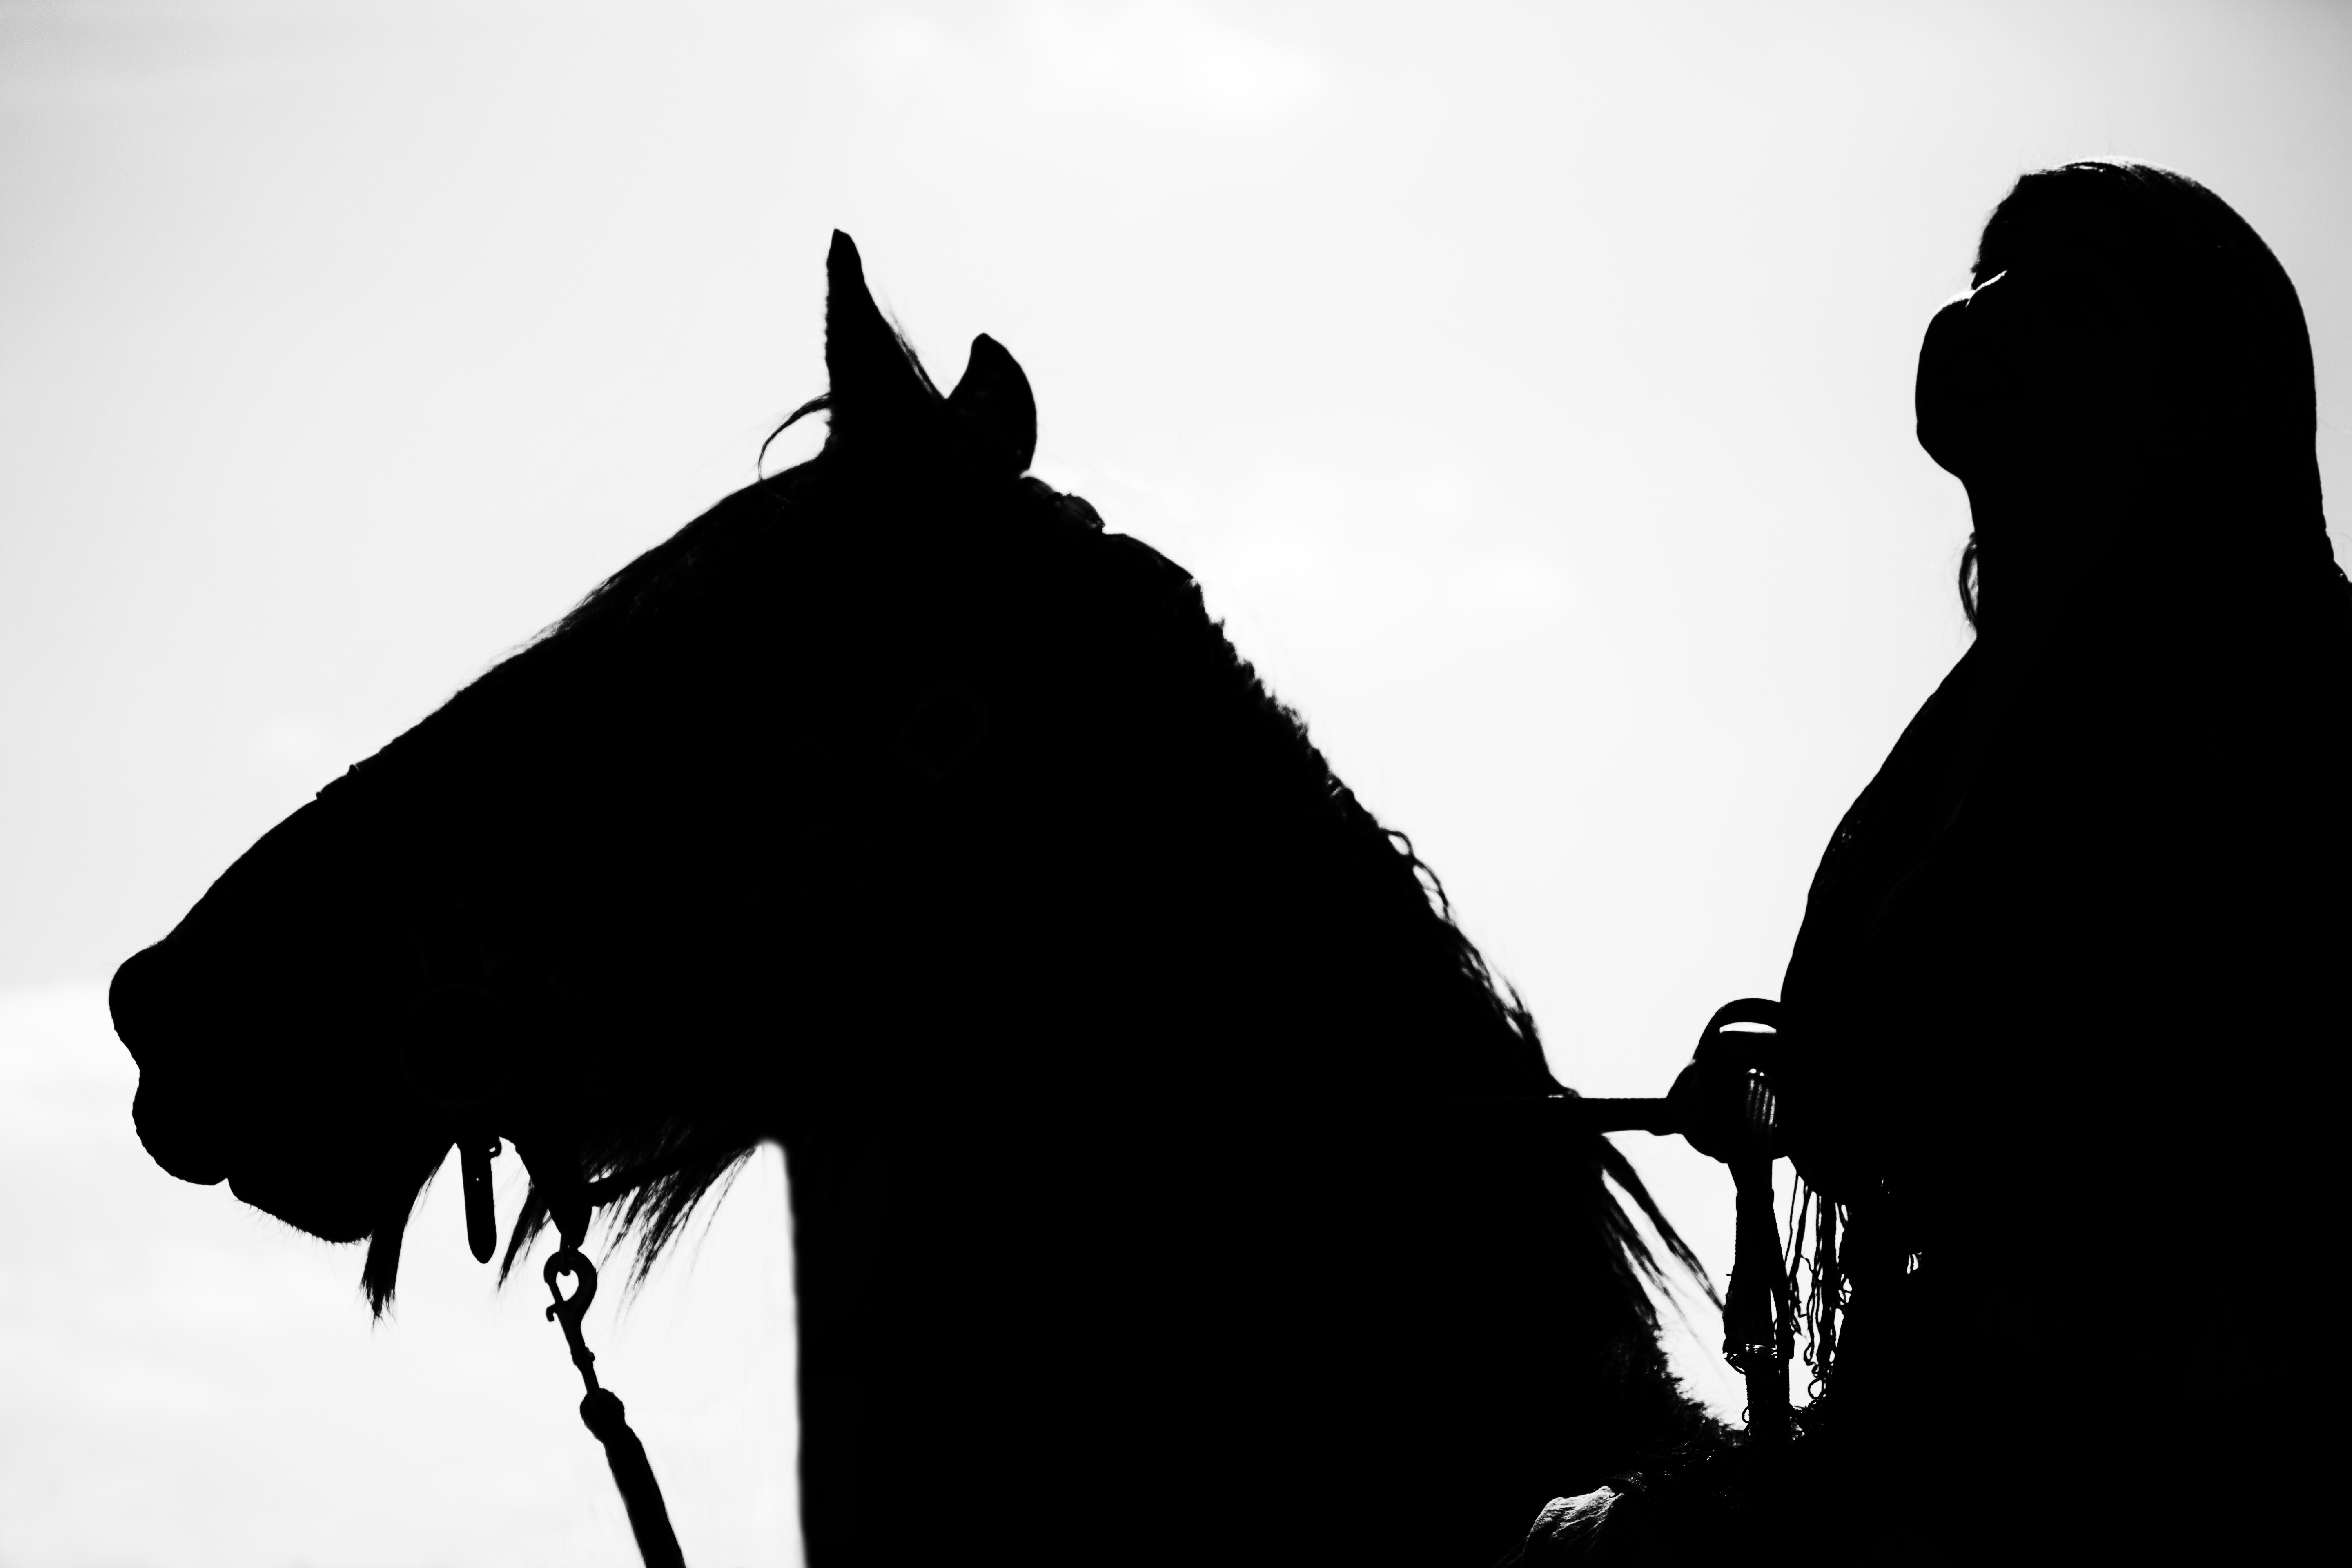 5760x3840 Free Images Silhouette, Black And White, Shadow, Jumper, Wrinkle